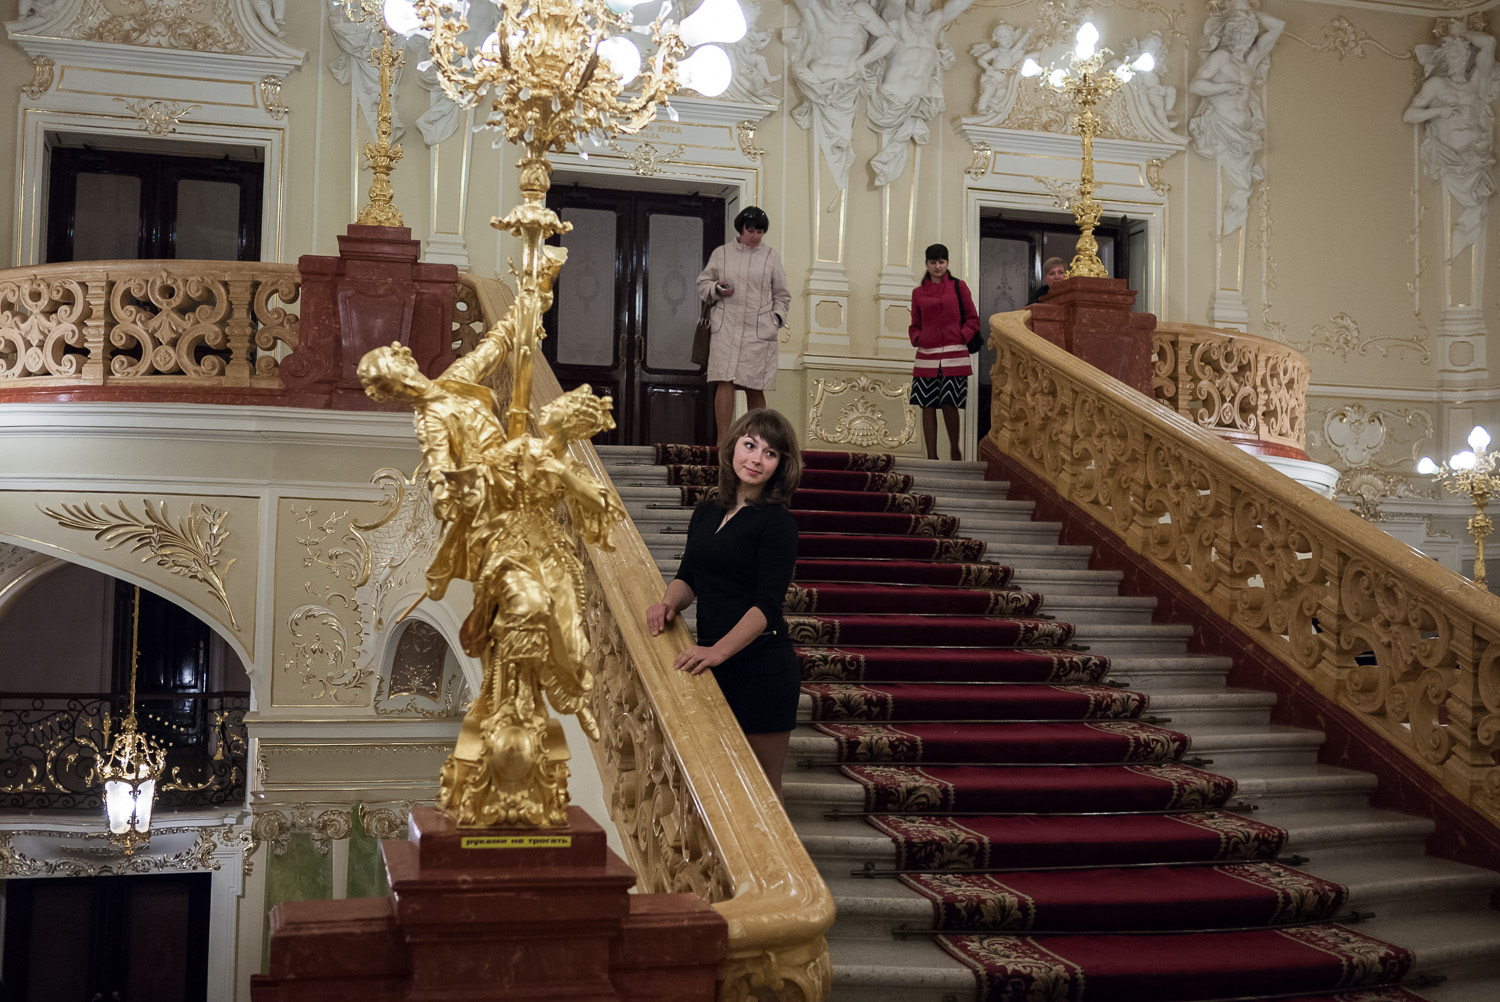 A young woman pictured after a performance in Kiev's opera house.